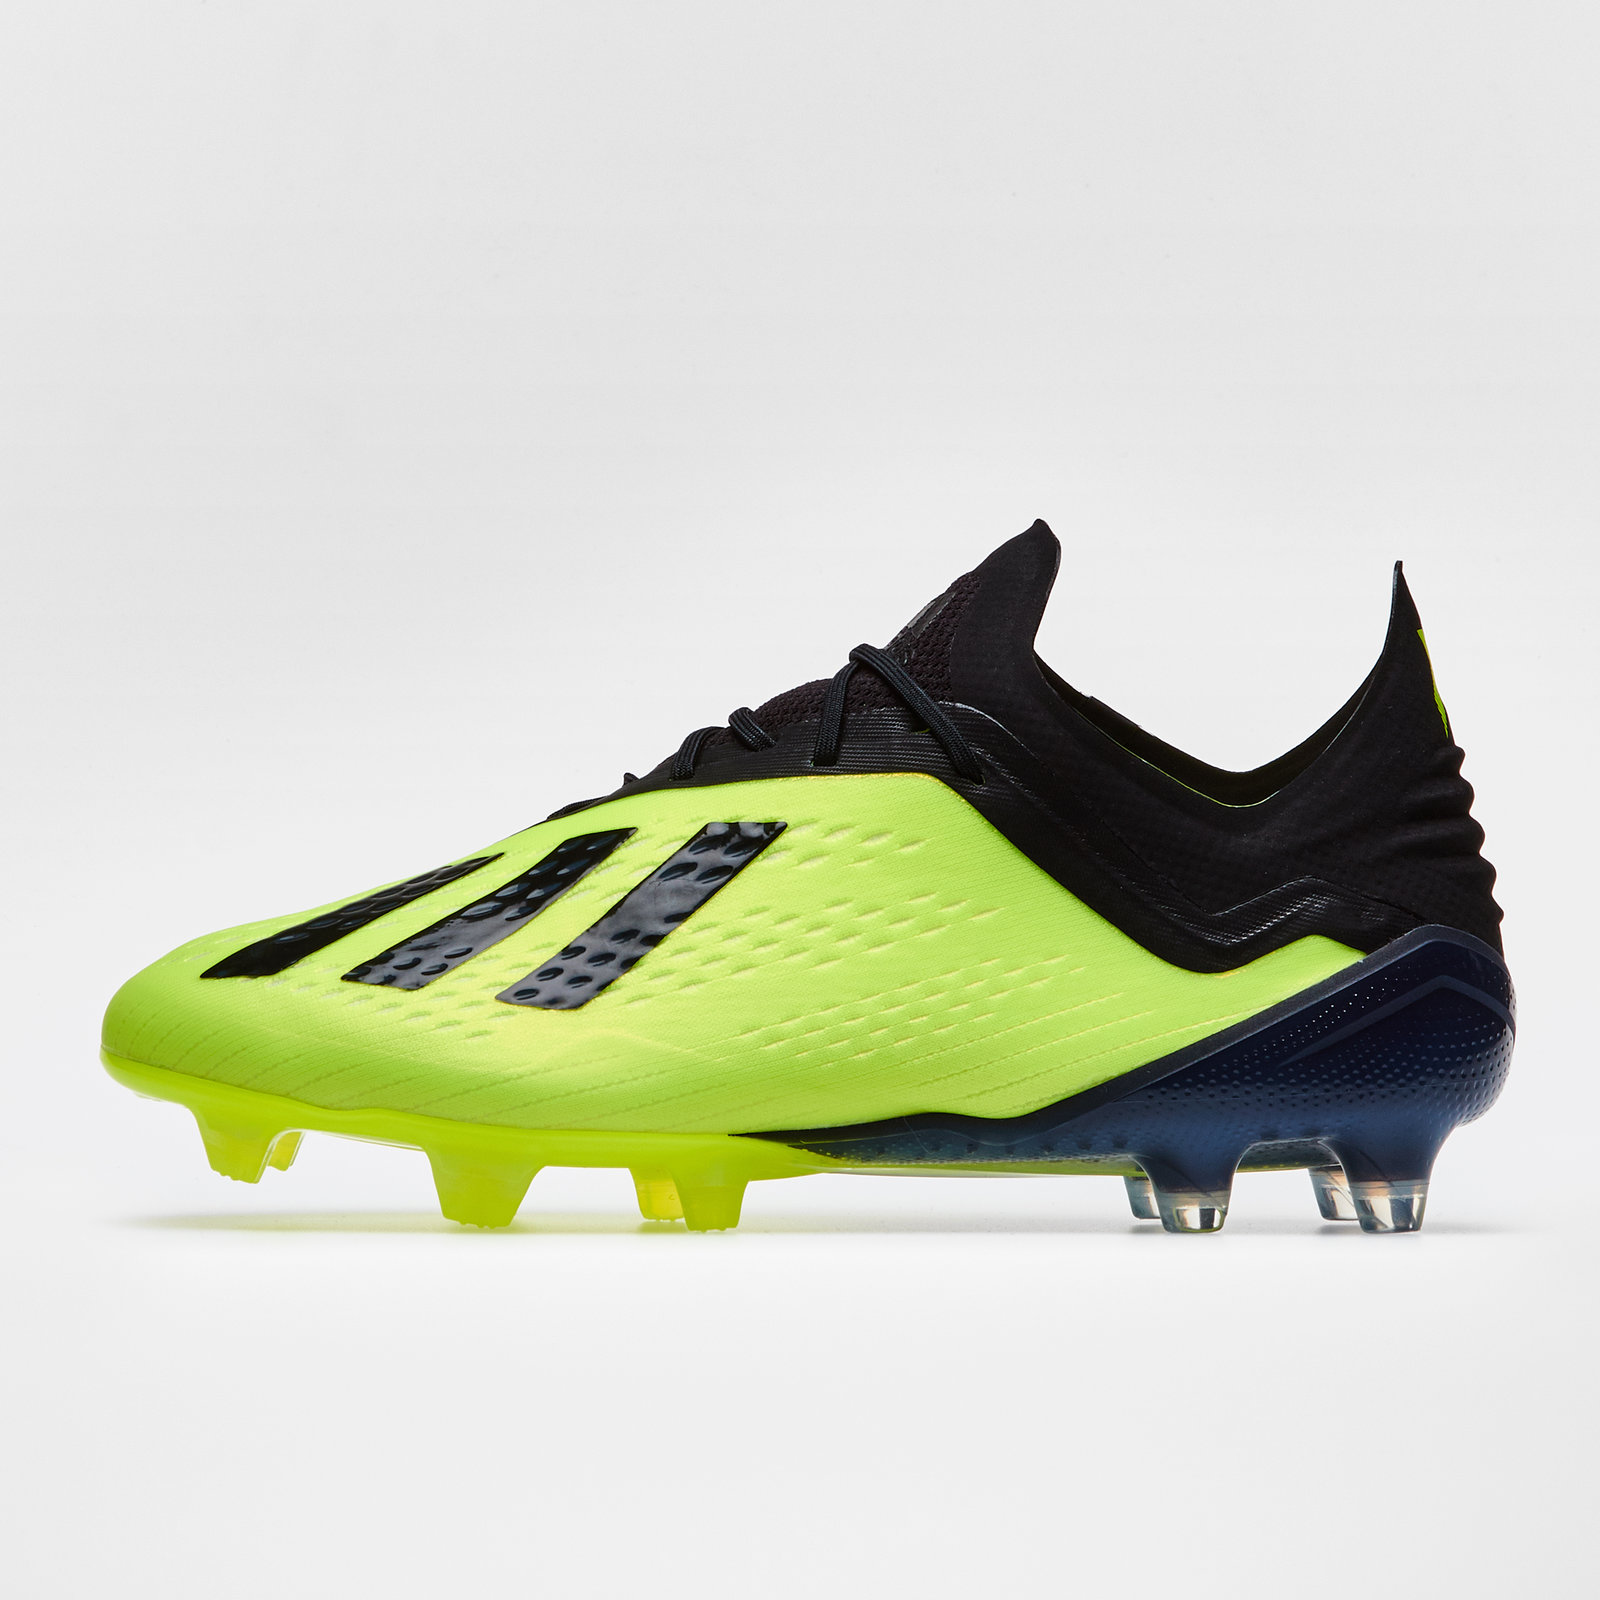 aaa092b58f78 adidas Mens X 18.1 Firm Ground Football Boots Studs Trainers Sports Shoes  Yellow